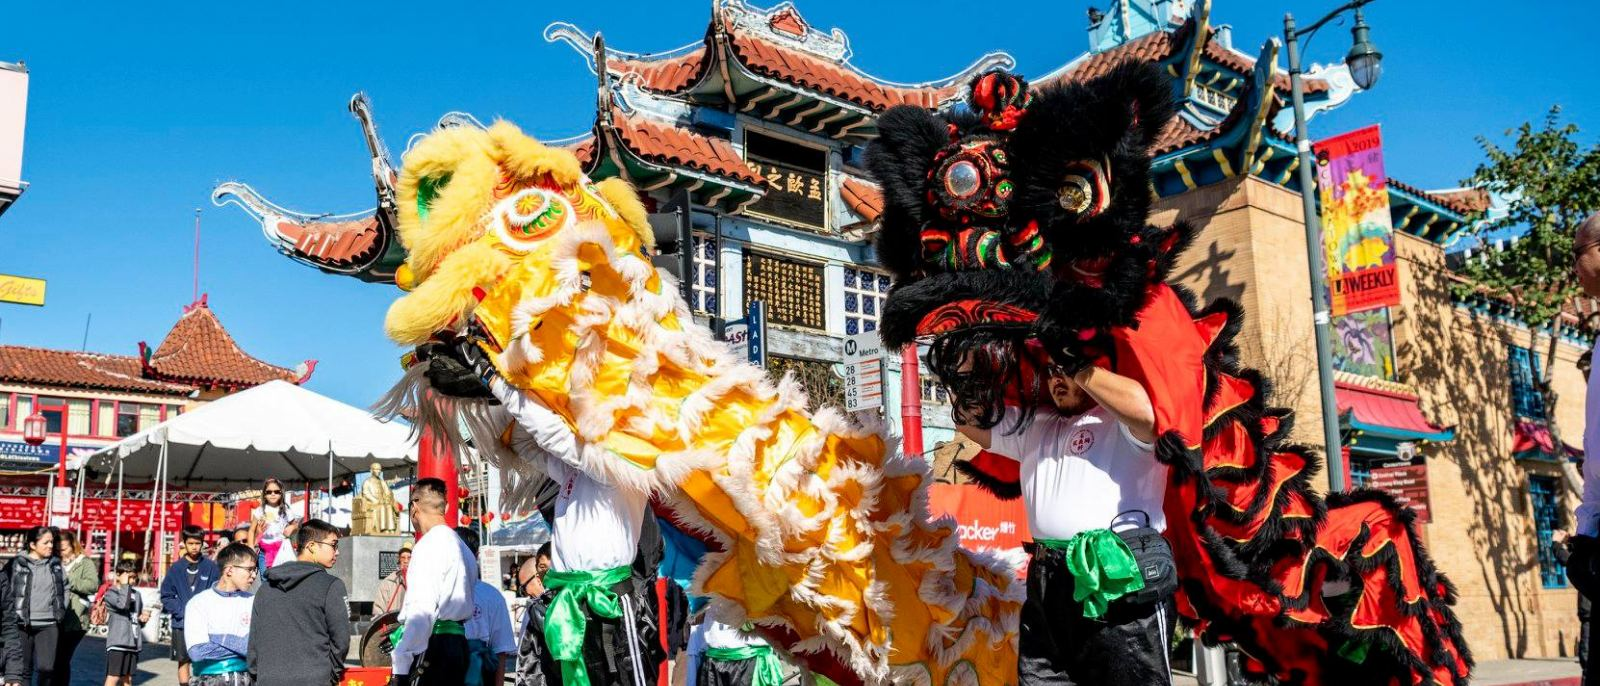 Traditional lion dancers performing on the streets of Chinatown in Downtown LA